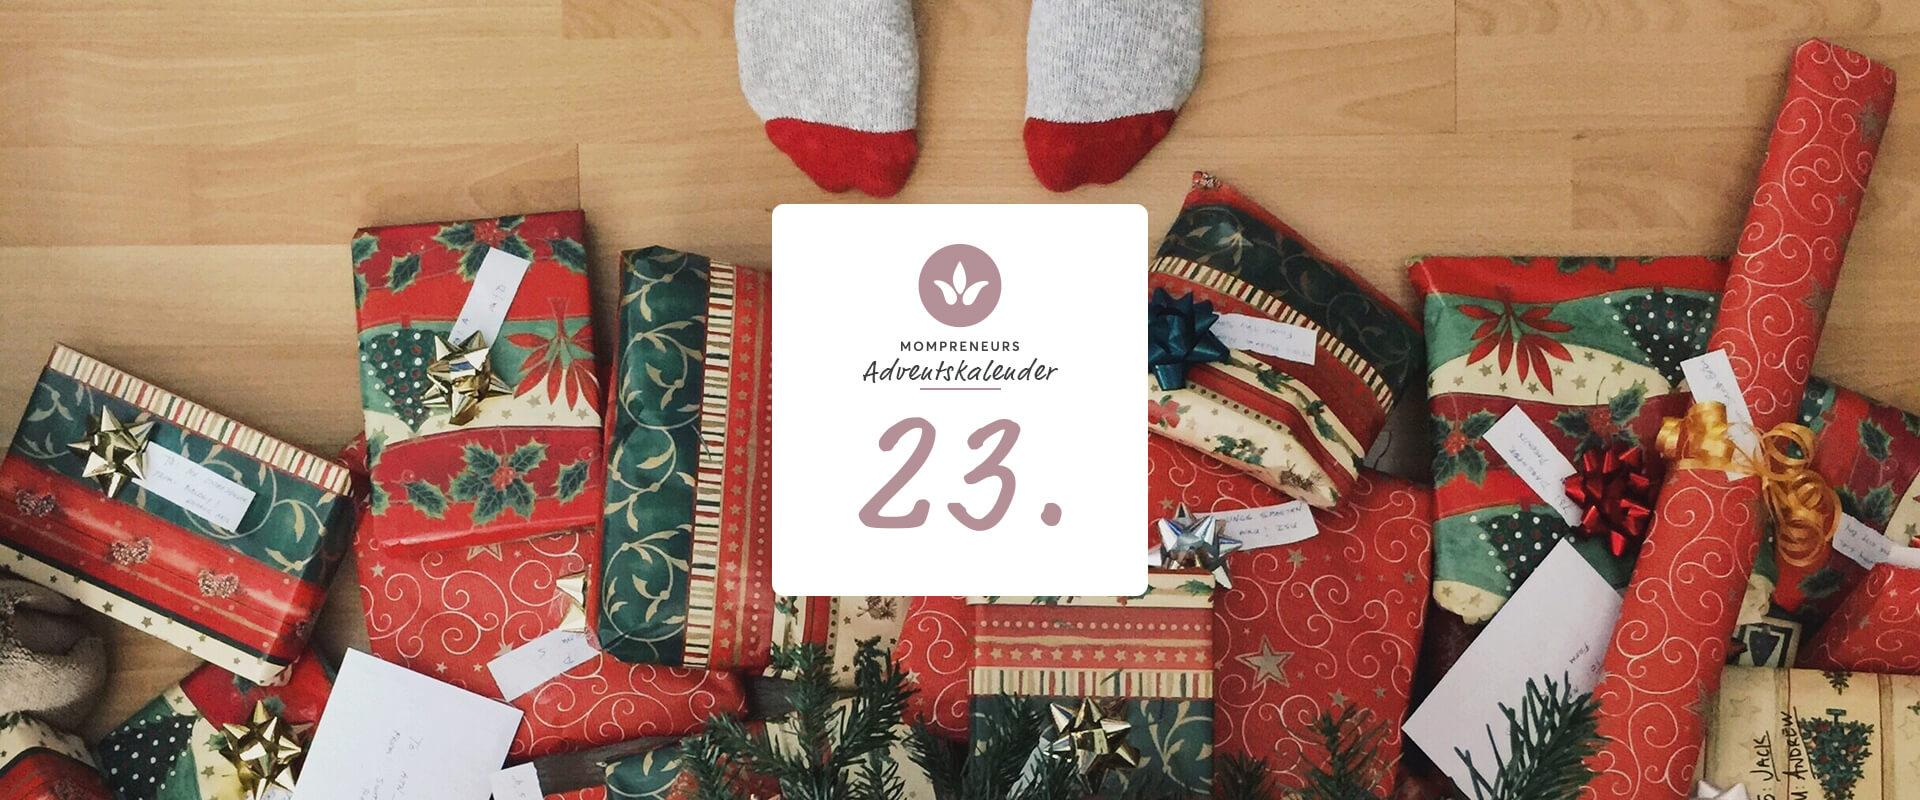 MomPreneurs Adventskalender Martina Peters